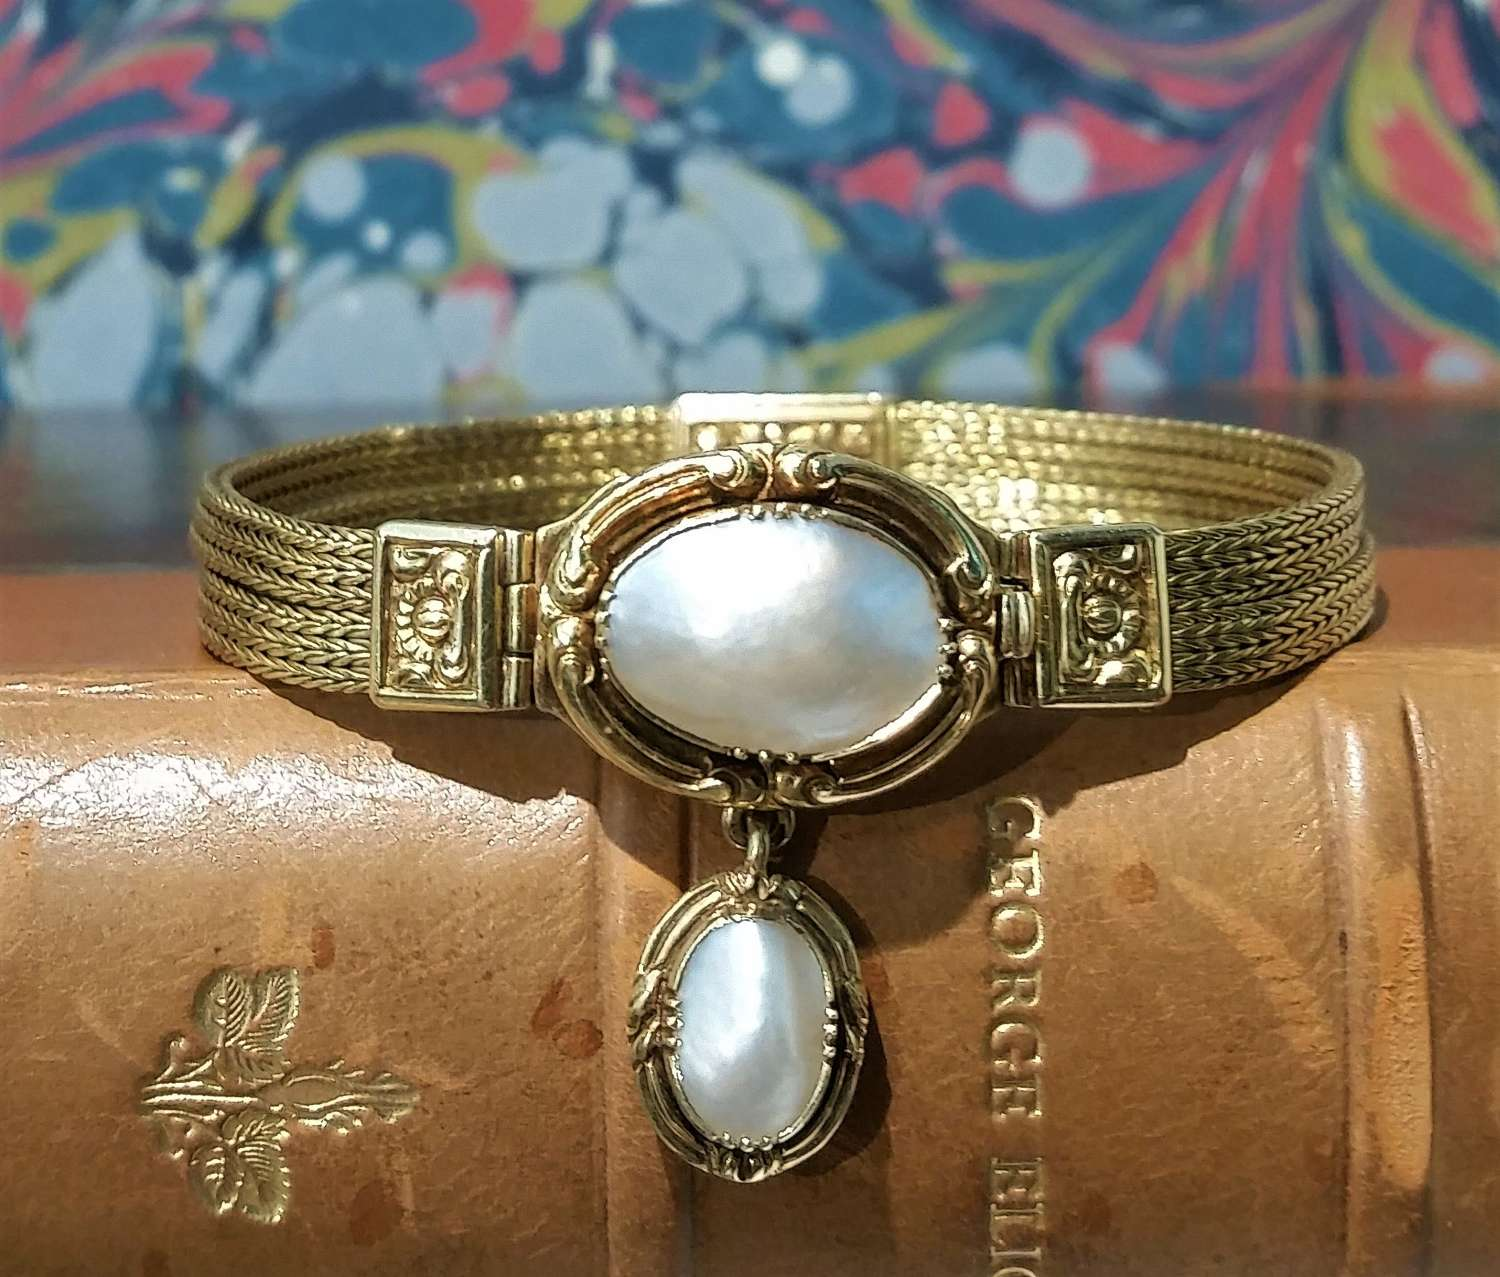 Antique French gold and pearl bracelet c.1830